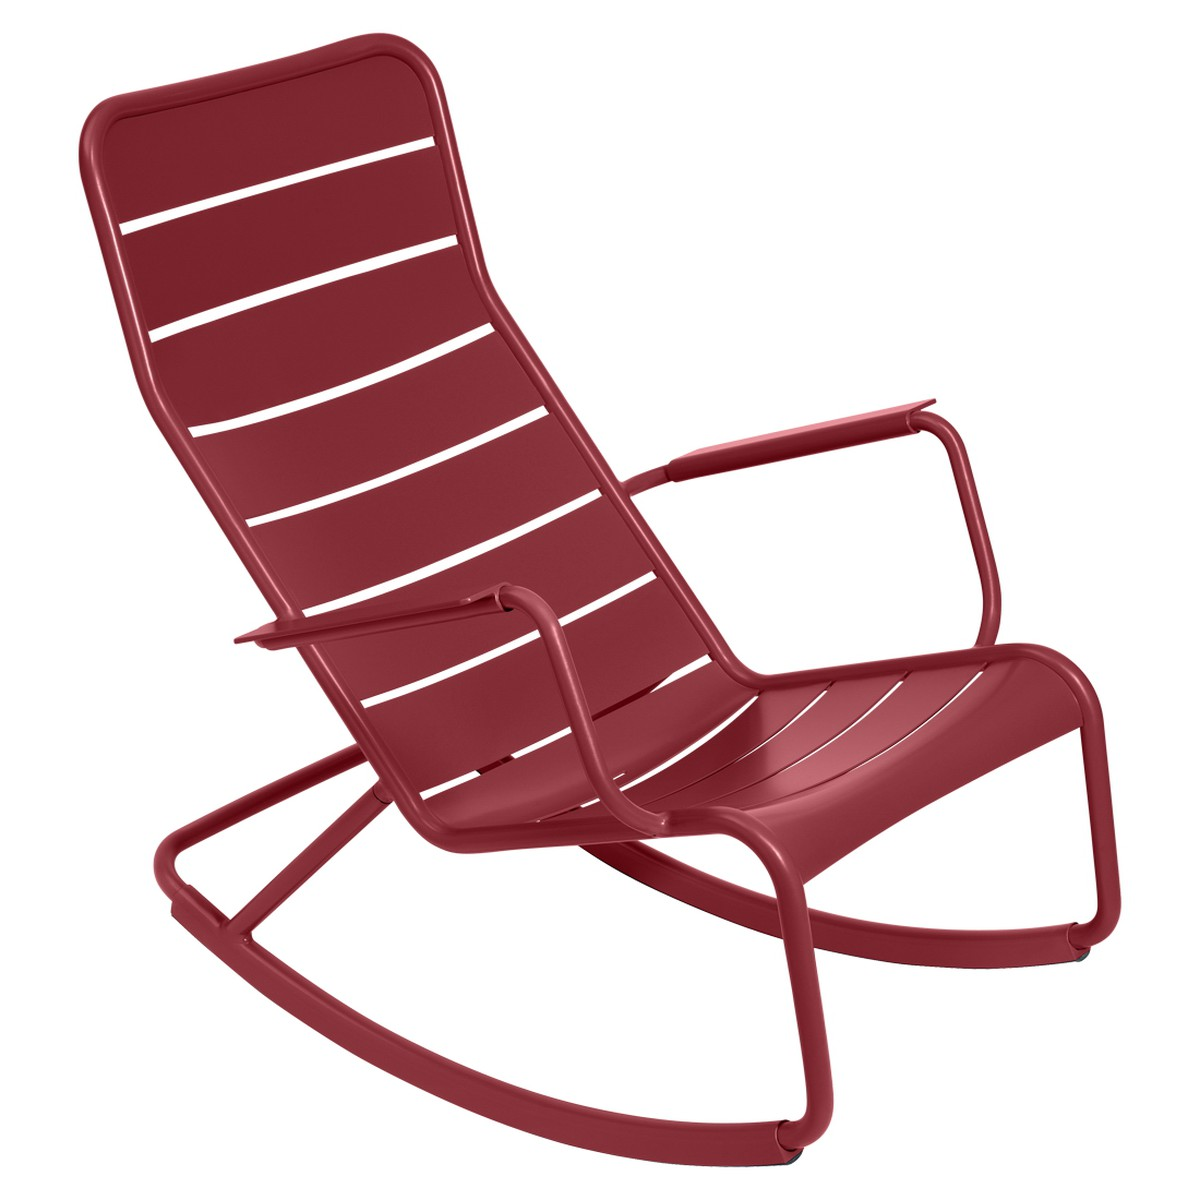 Fermob LUXEMBOURG Rocking Chair Luxembourg Rouge groseille 99x50x69.5cm